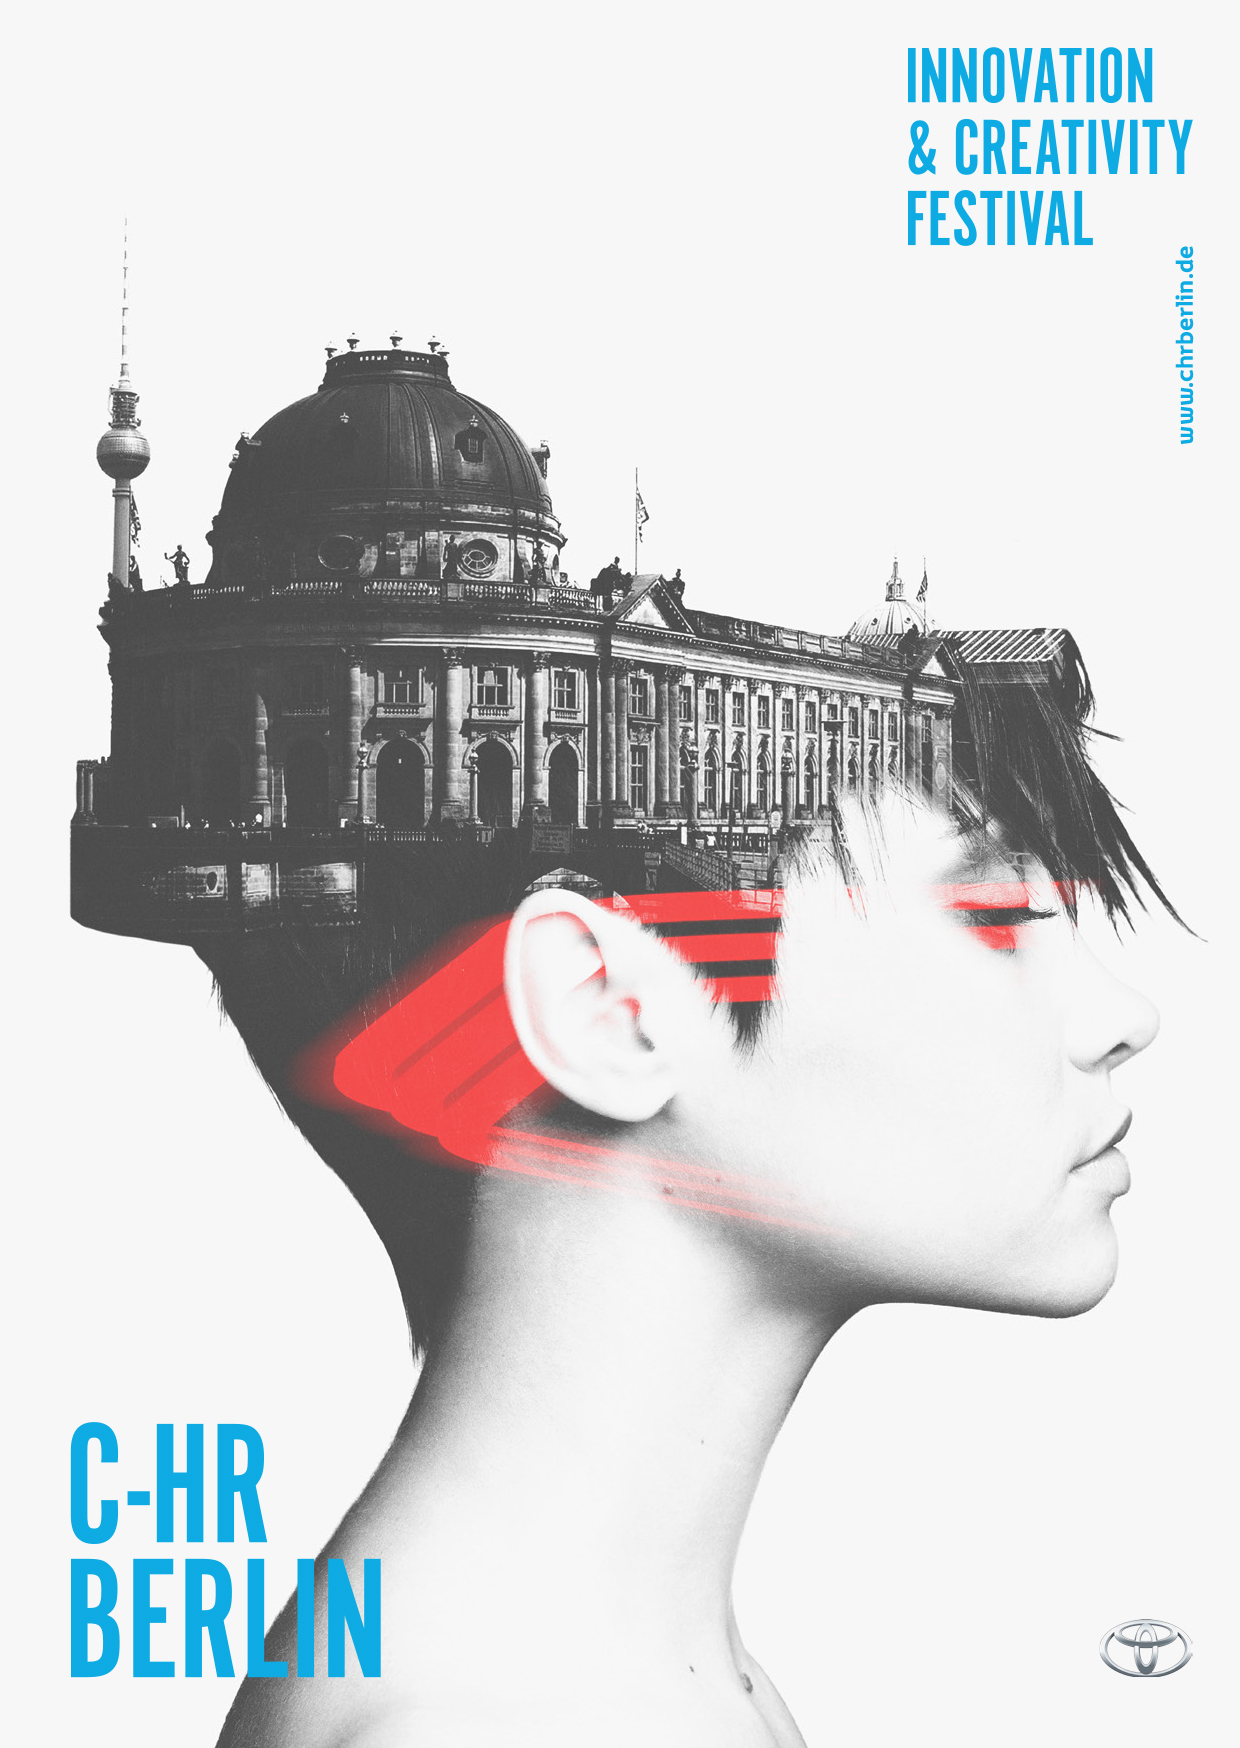 C-HR_BERLIN_A6_Postcards_1-6.jpg